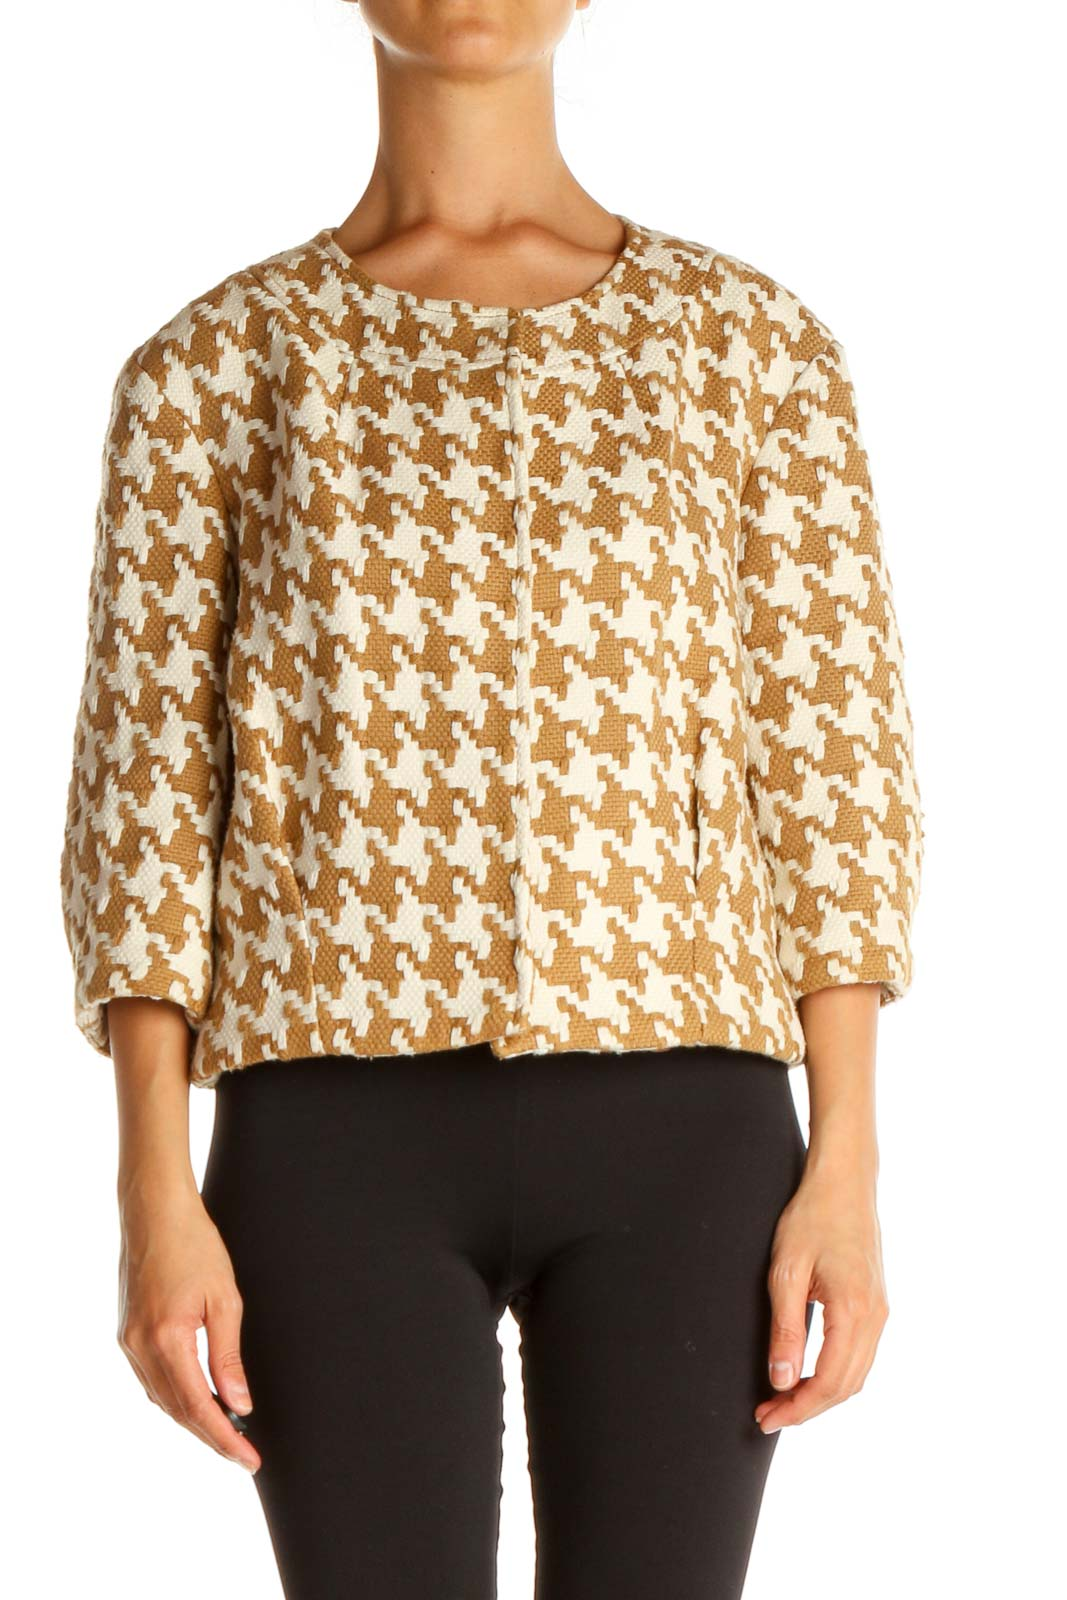 Beige Houndstooth All Day Wear Sweater Front